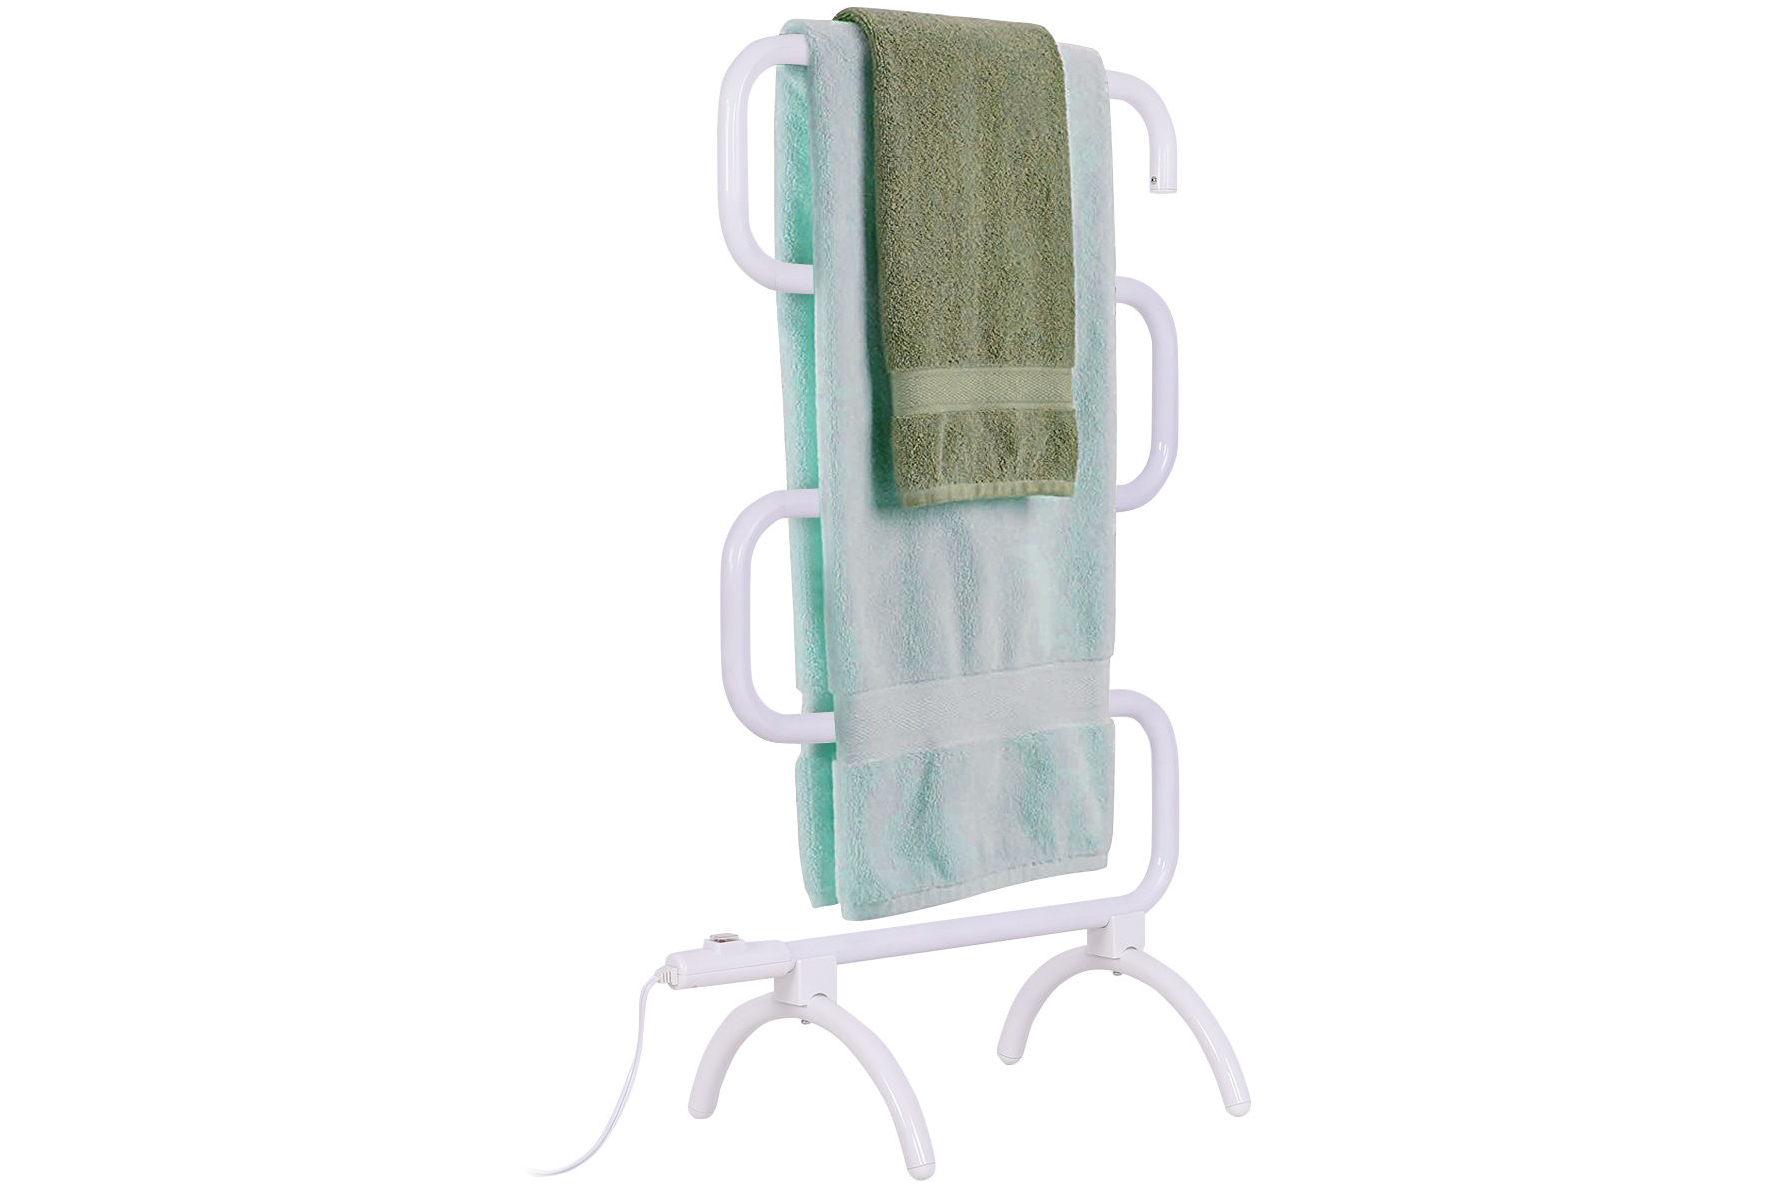 Costway Electric Towel Warmer Drying Rack